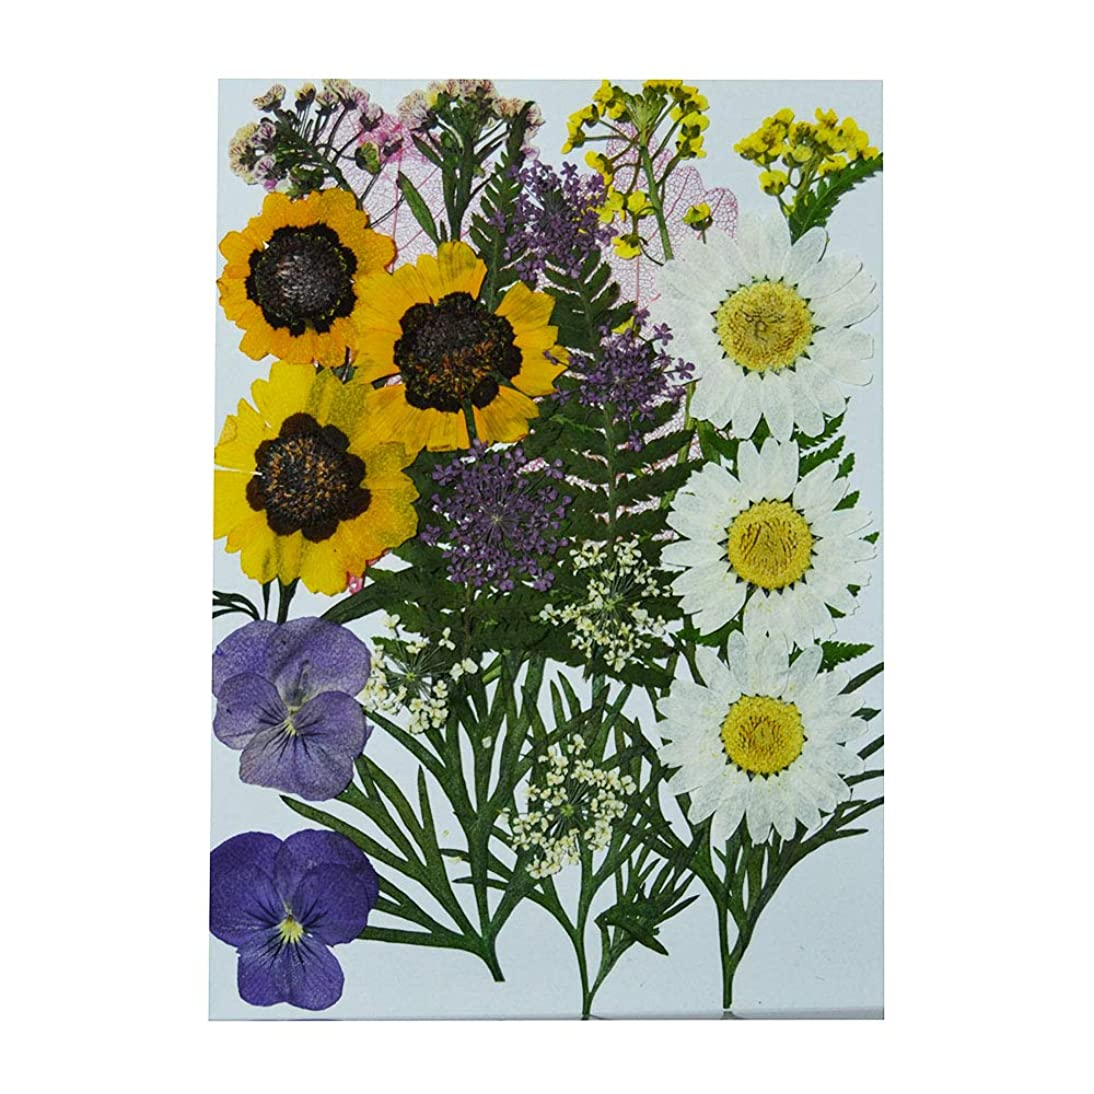 Uokwiwi Real Dried Pressed Flowers Assorted Colorful Daisies Leaves Hydrangeas for Art Craft DIY - 1 Pack Size 16